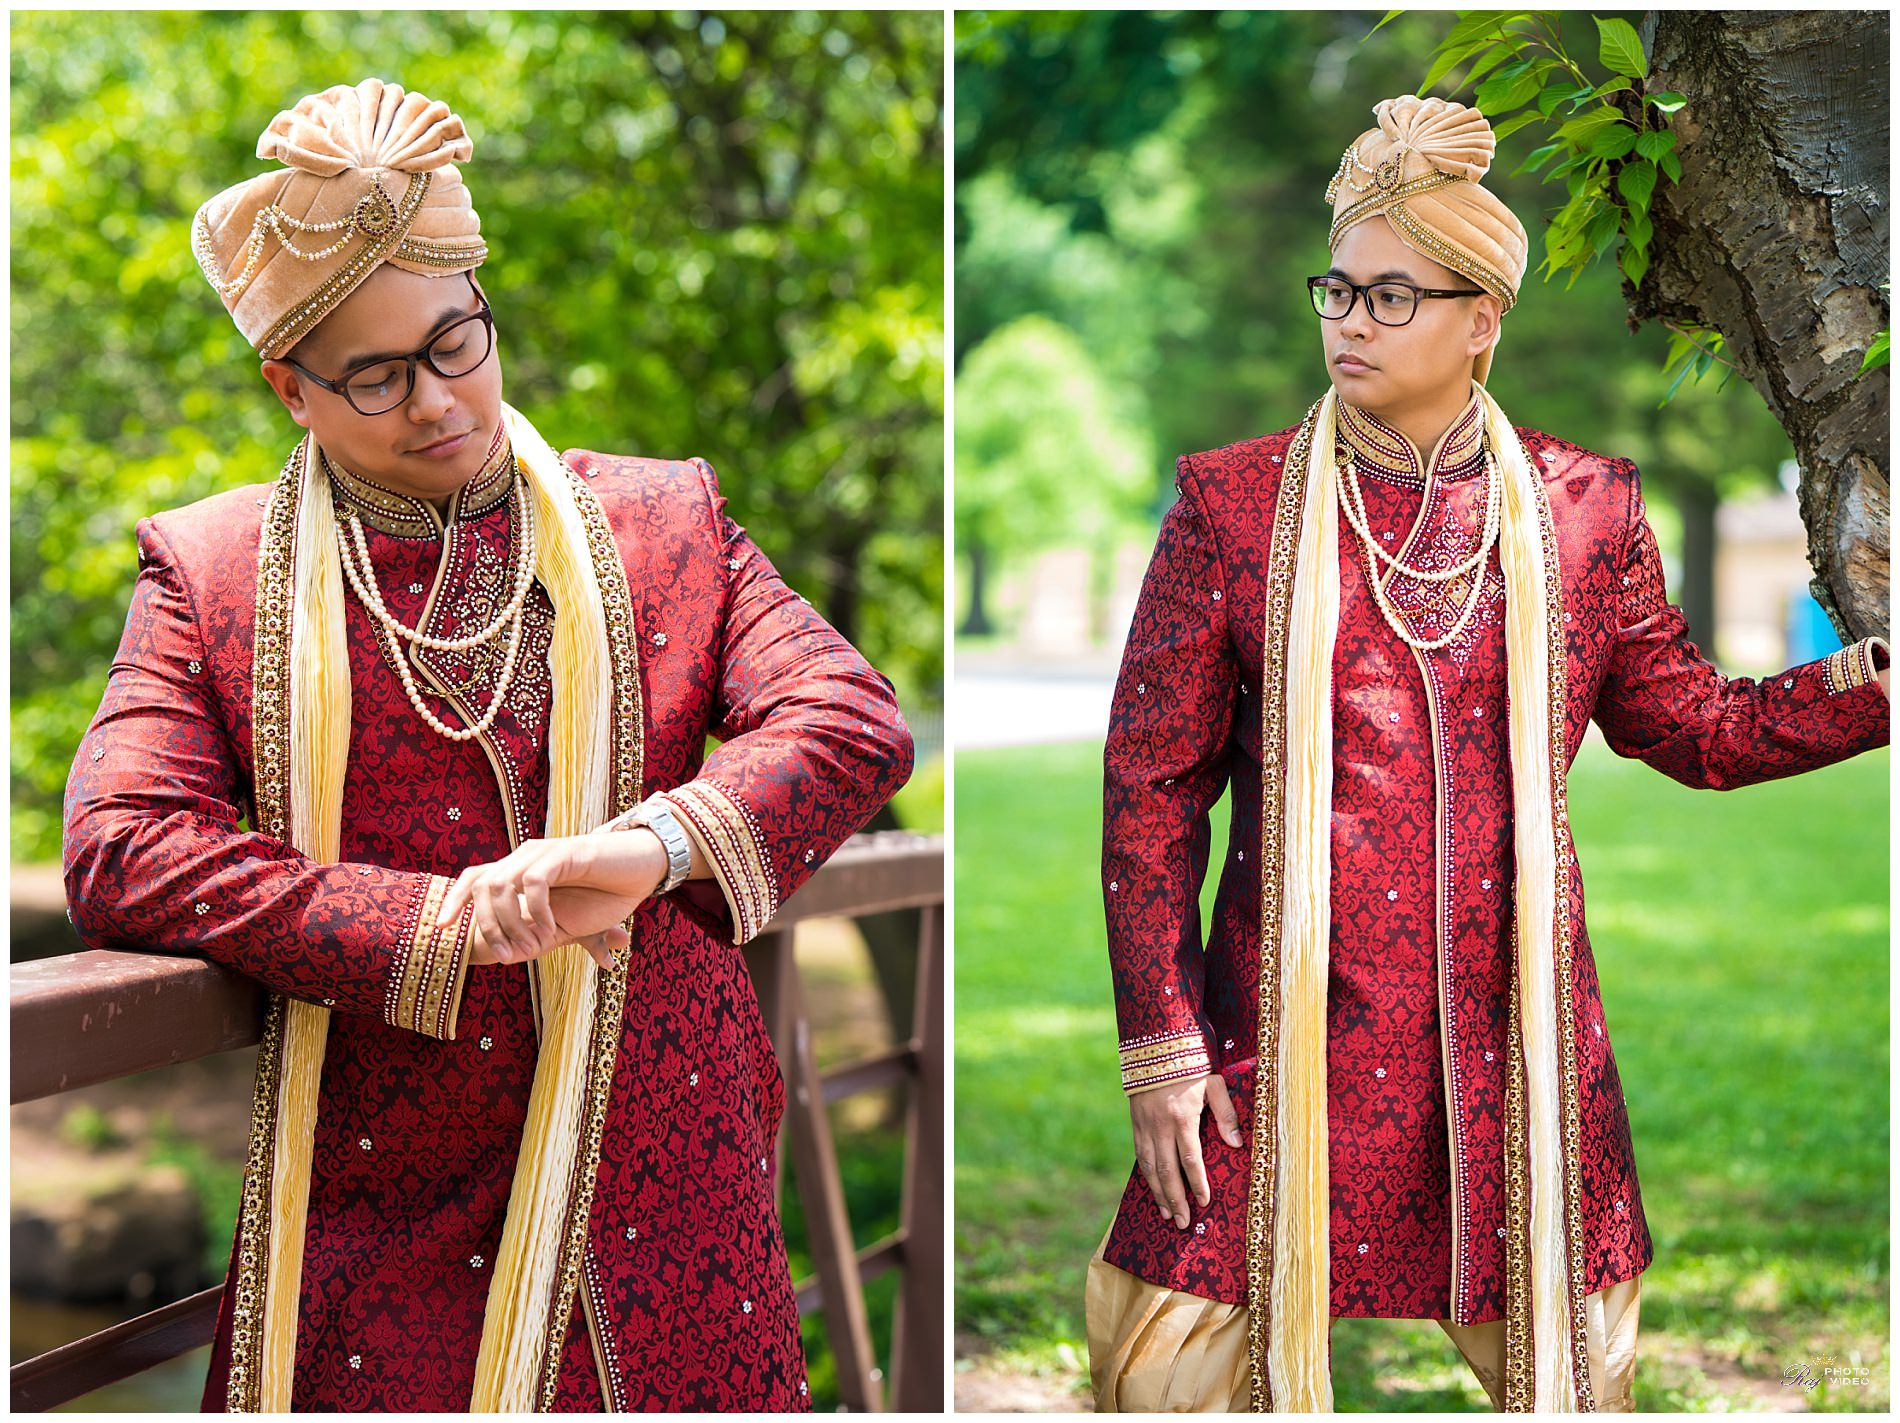 Roosevelt-Park-Bride-Groom-Portrait-Shoot-Khusbu-Jeff-10.jpg